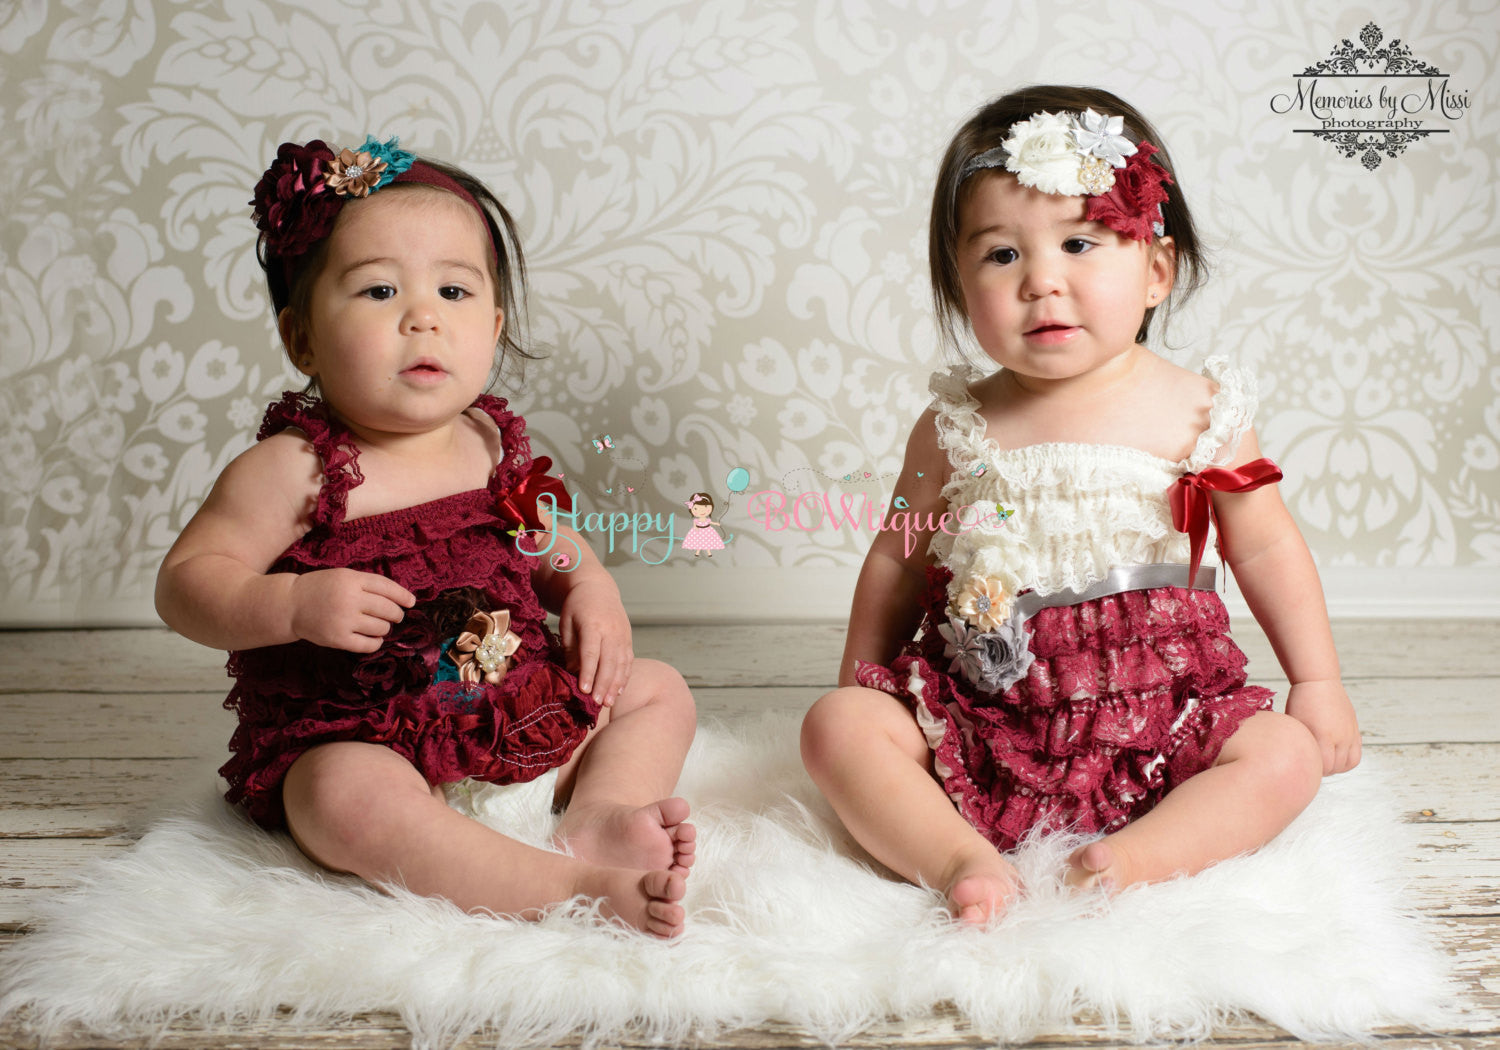 Girl's Burgundy Lace Dress/ Burgundy Ivory Grey Girl's Lace Dress set - Happy BOWtique - children's clothing, Baby Girl clothing